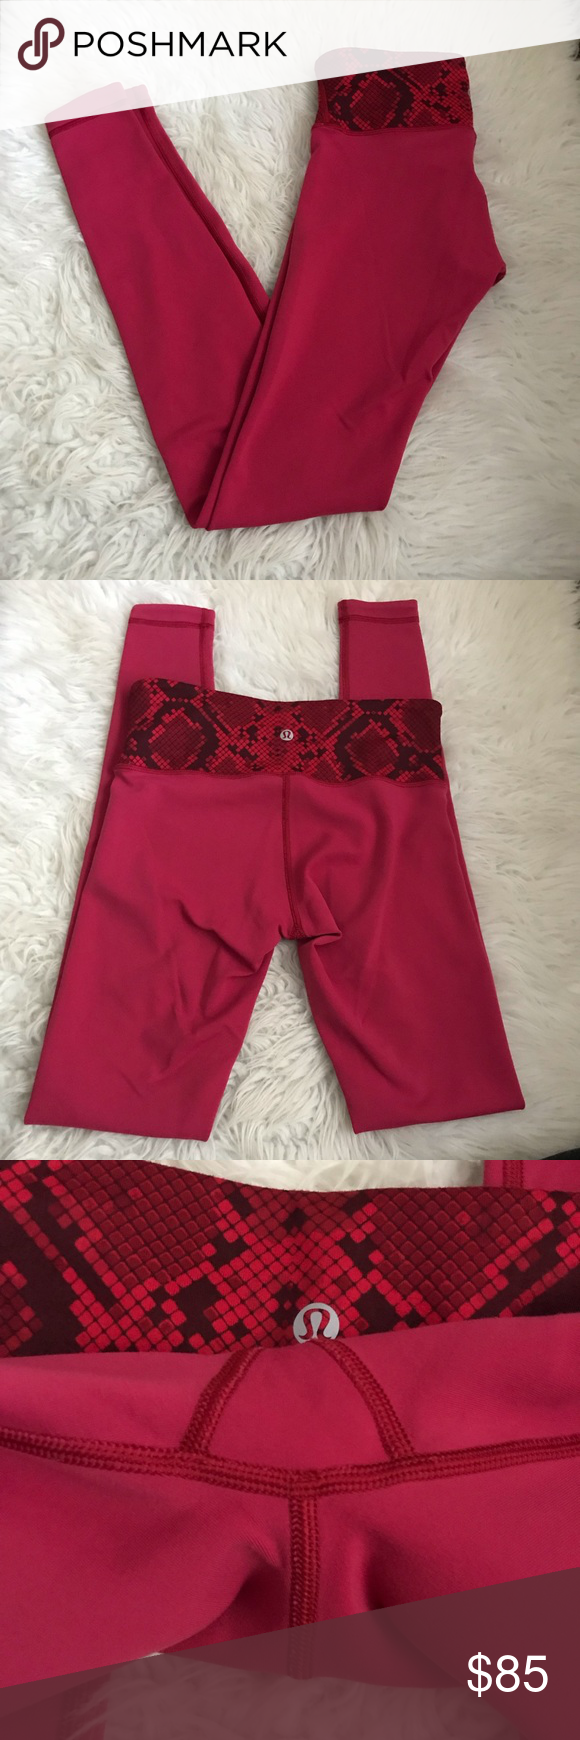 de34e549b2 Reversible with no flaws or pilling! ❌ No Trades! Reasonable offers only! lululemon  athletica Pants Leggings. Lululemon Wunder Under Pant Cranberry ...